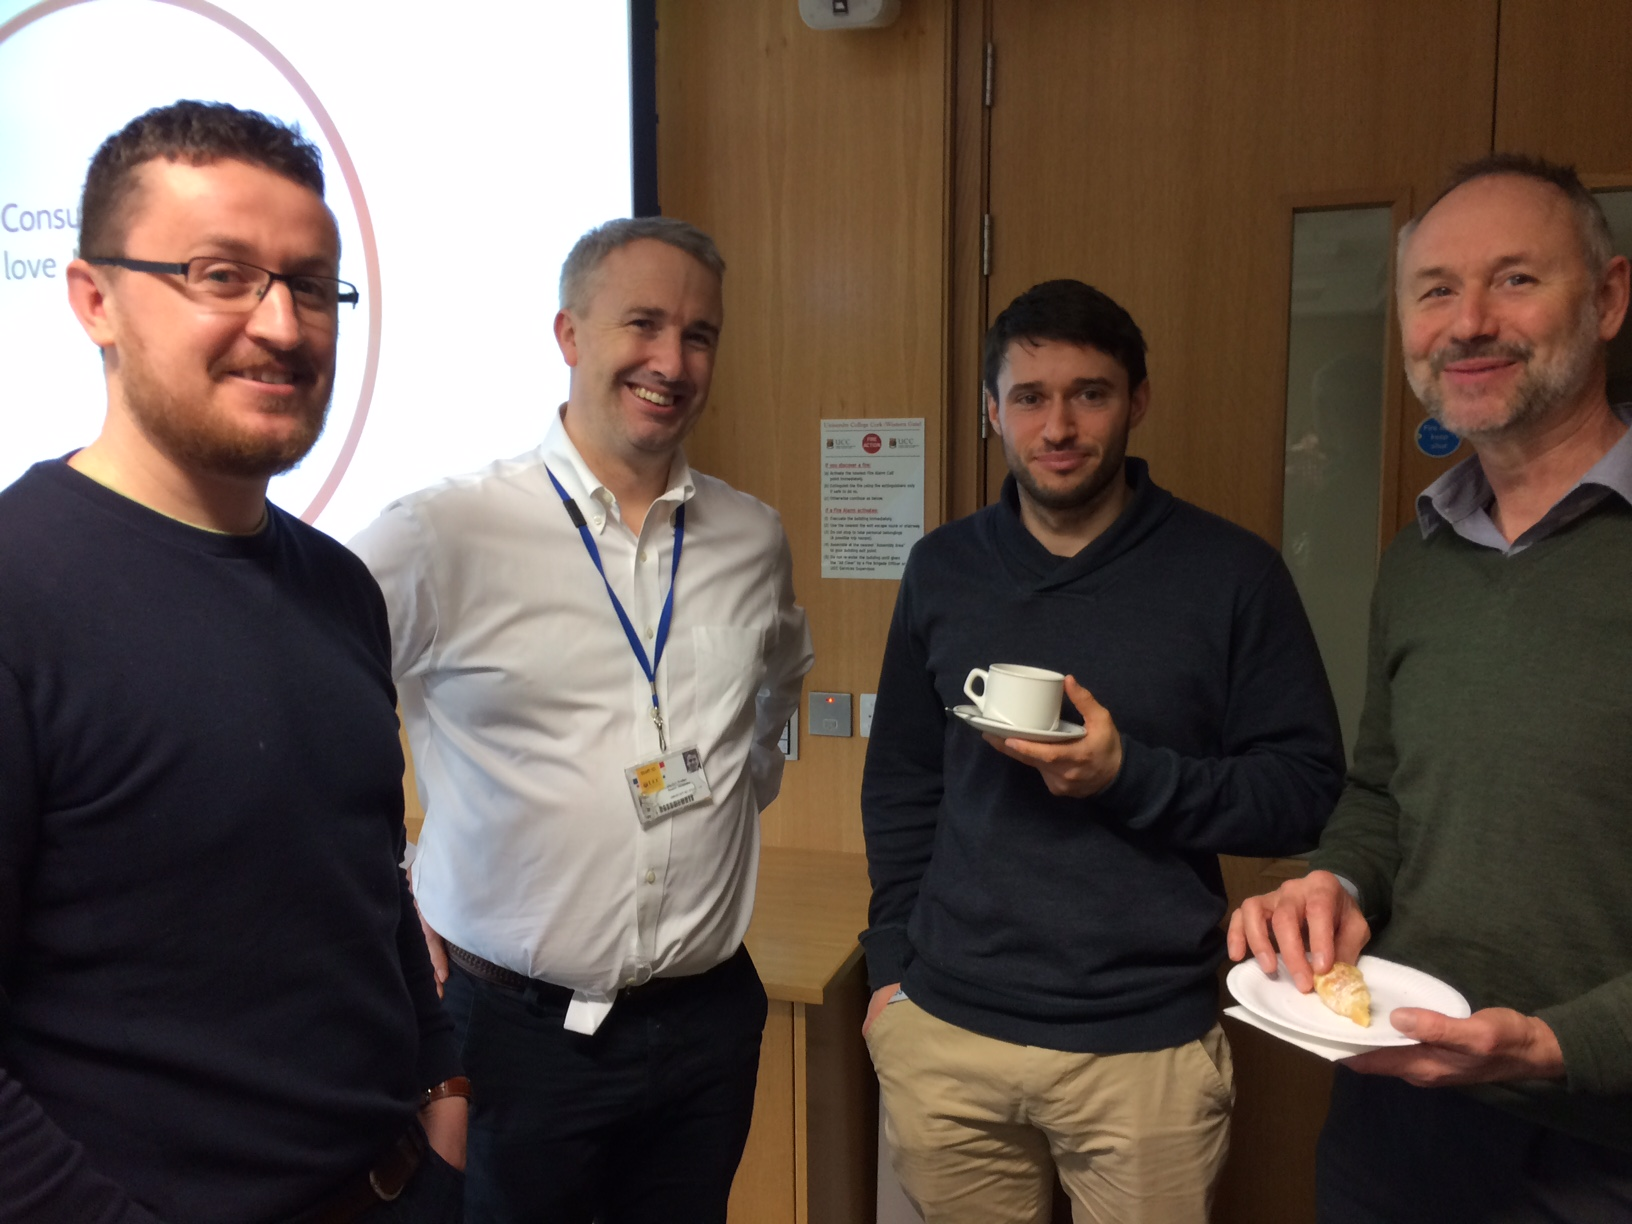 James Glynn, ERI; Declan Soden, Cancer Research; Michael O Connor, MaREI; and Jerry Sutton, MaREI participating in the SPRINT Accelerator.